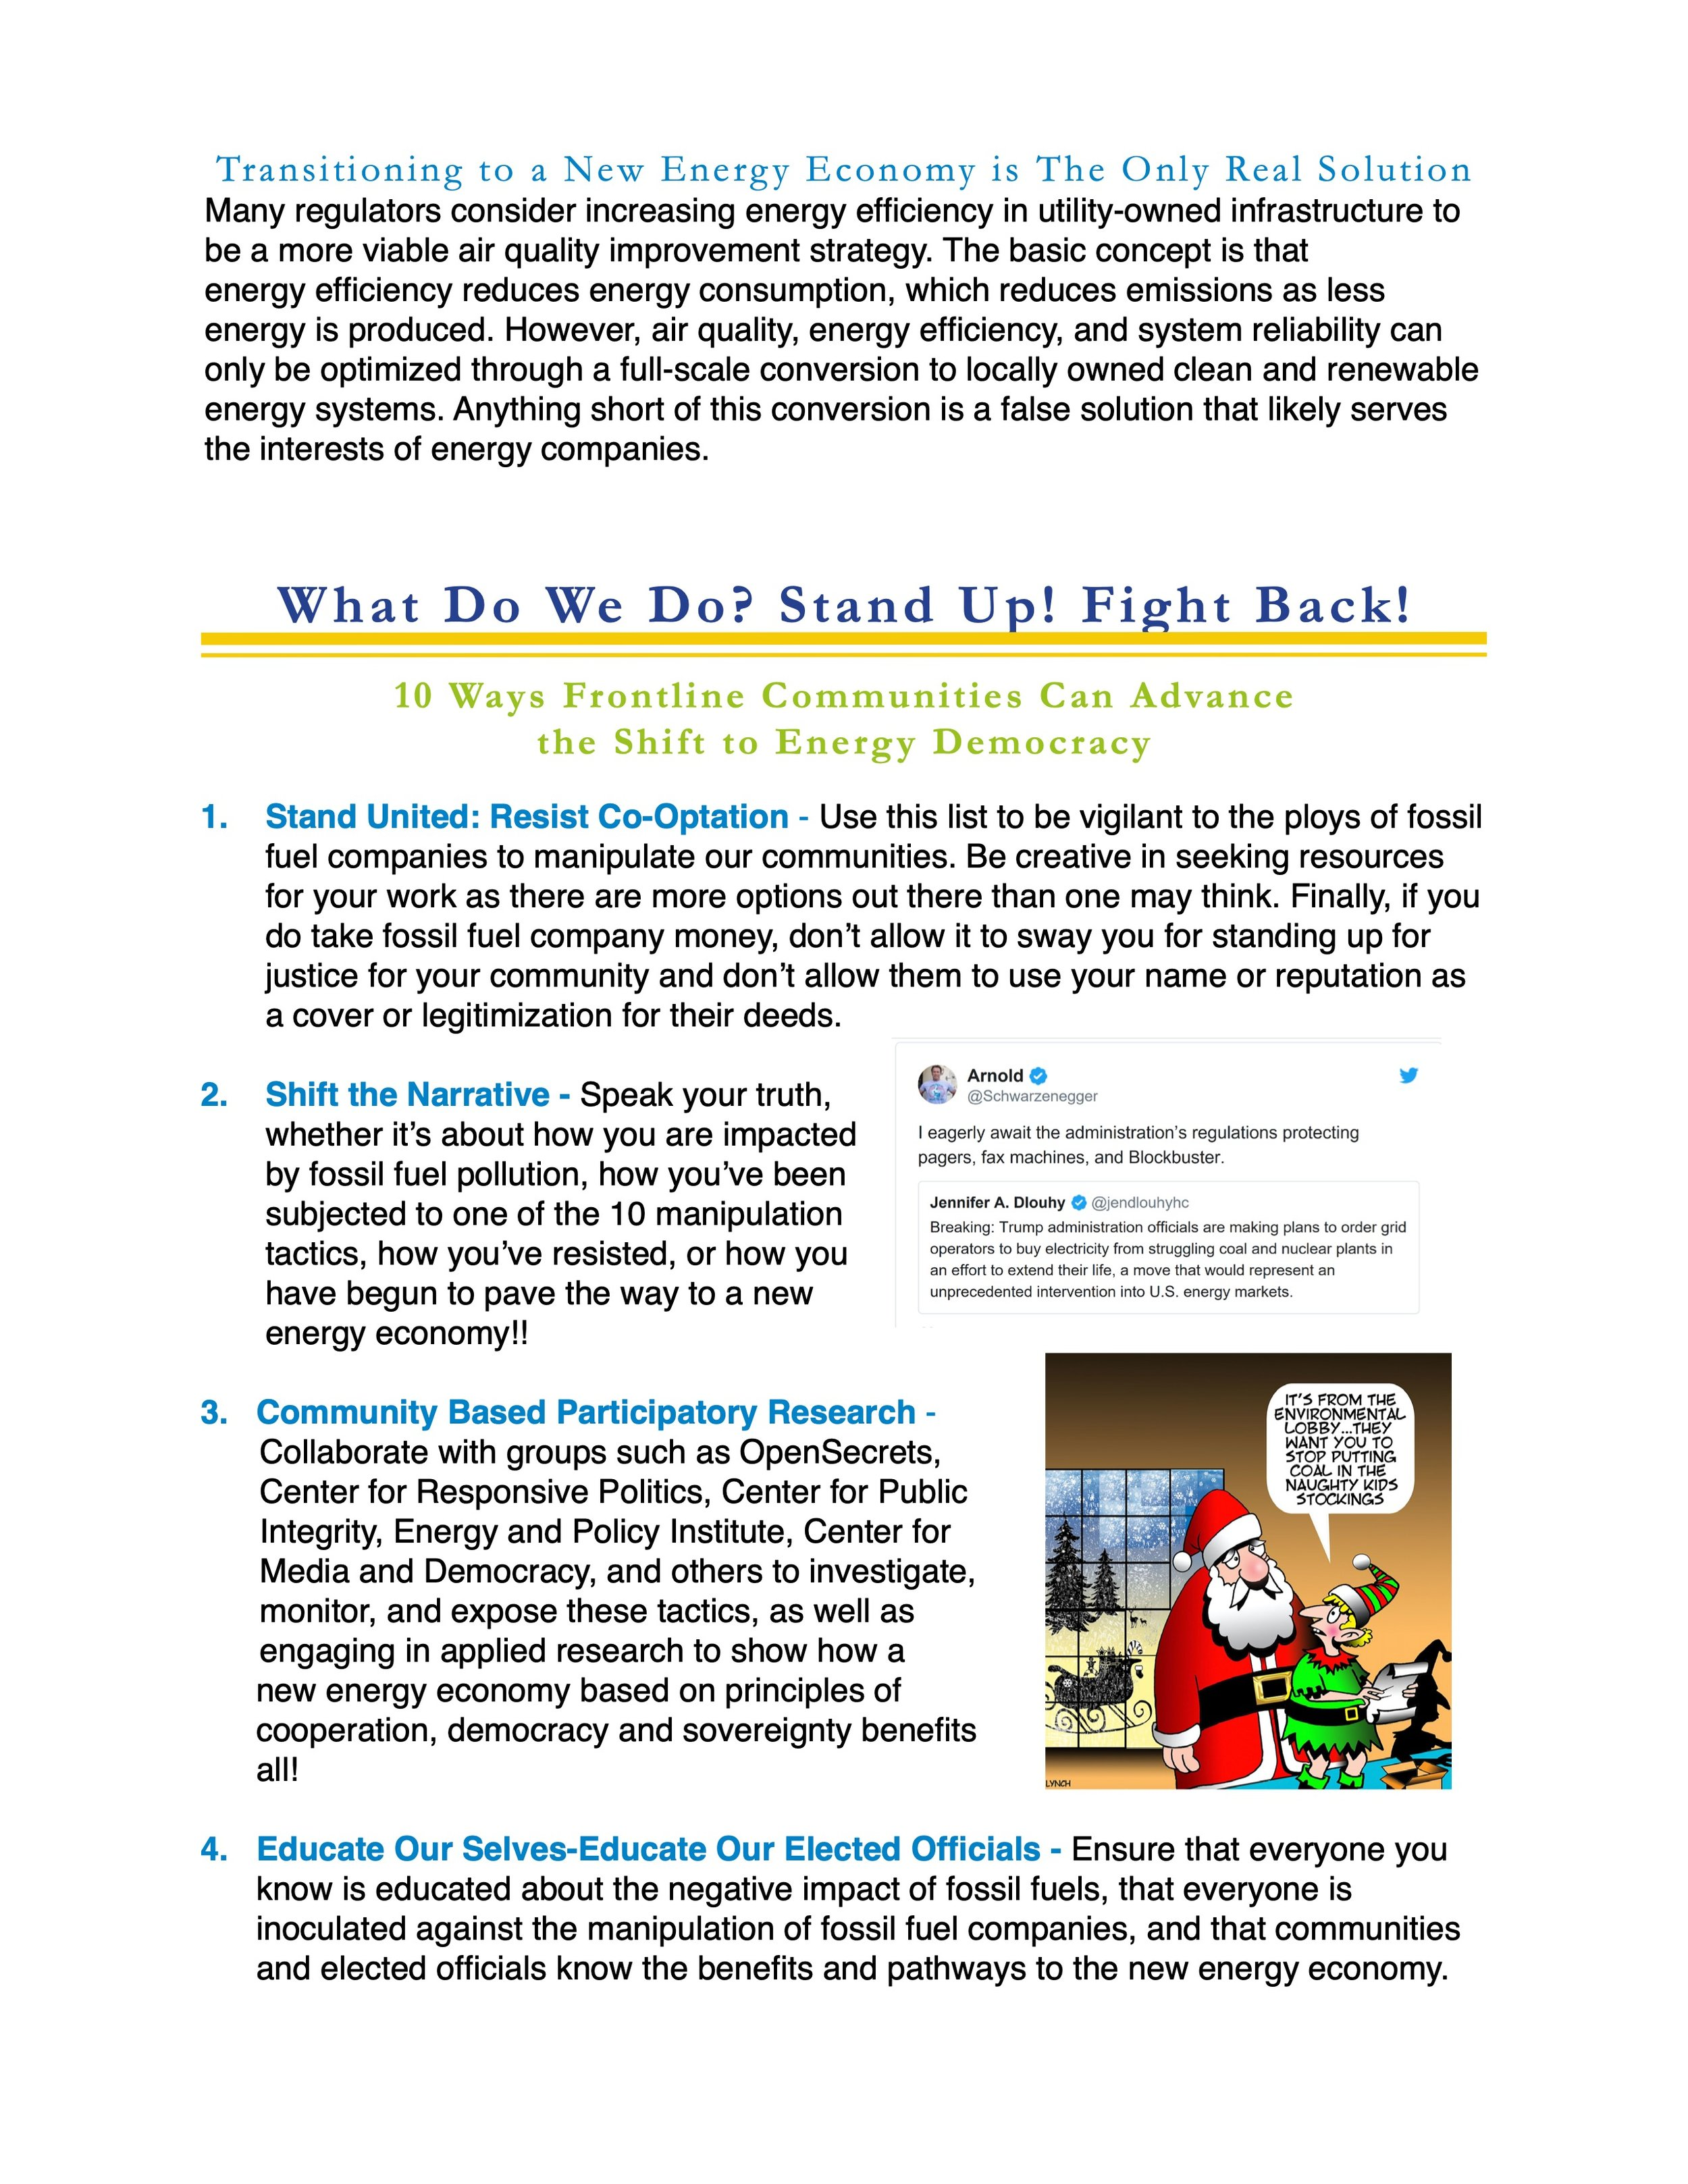 Fossil-Fueled-Foolery-An-Illustrated-Primer-on-the-Top-10-Manipulation-Tactics-of-the-Fossil-Fuel-Industry 19.jpeg